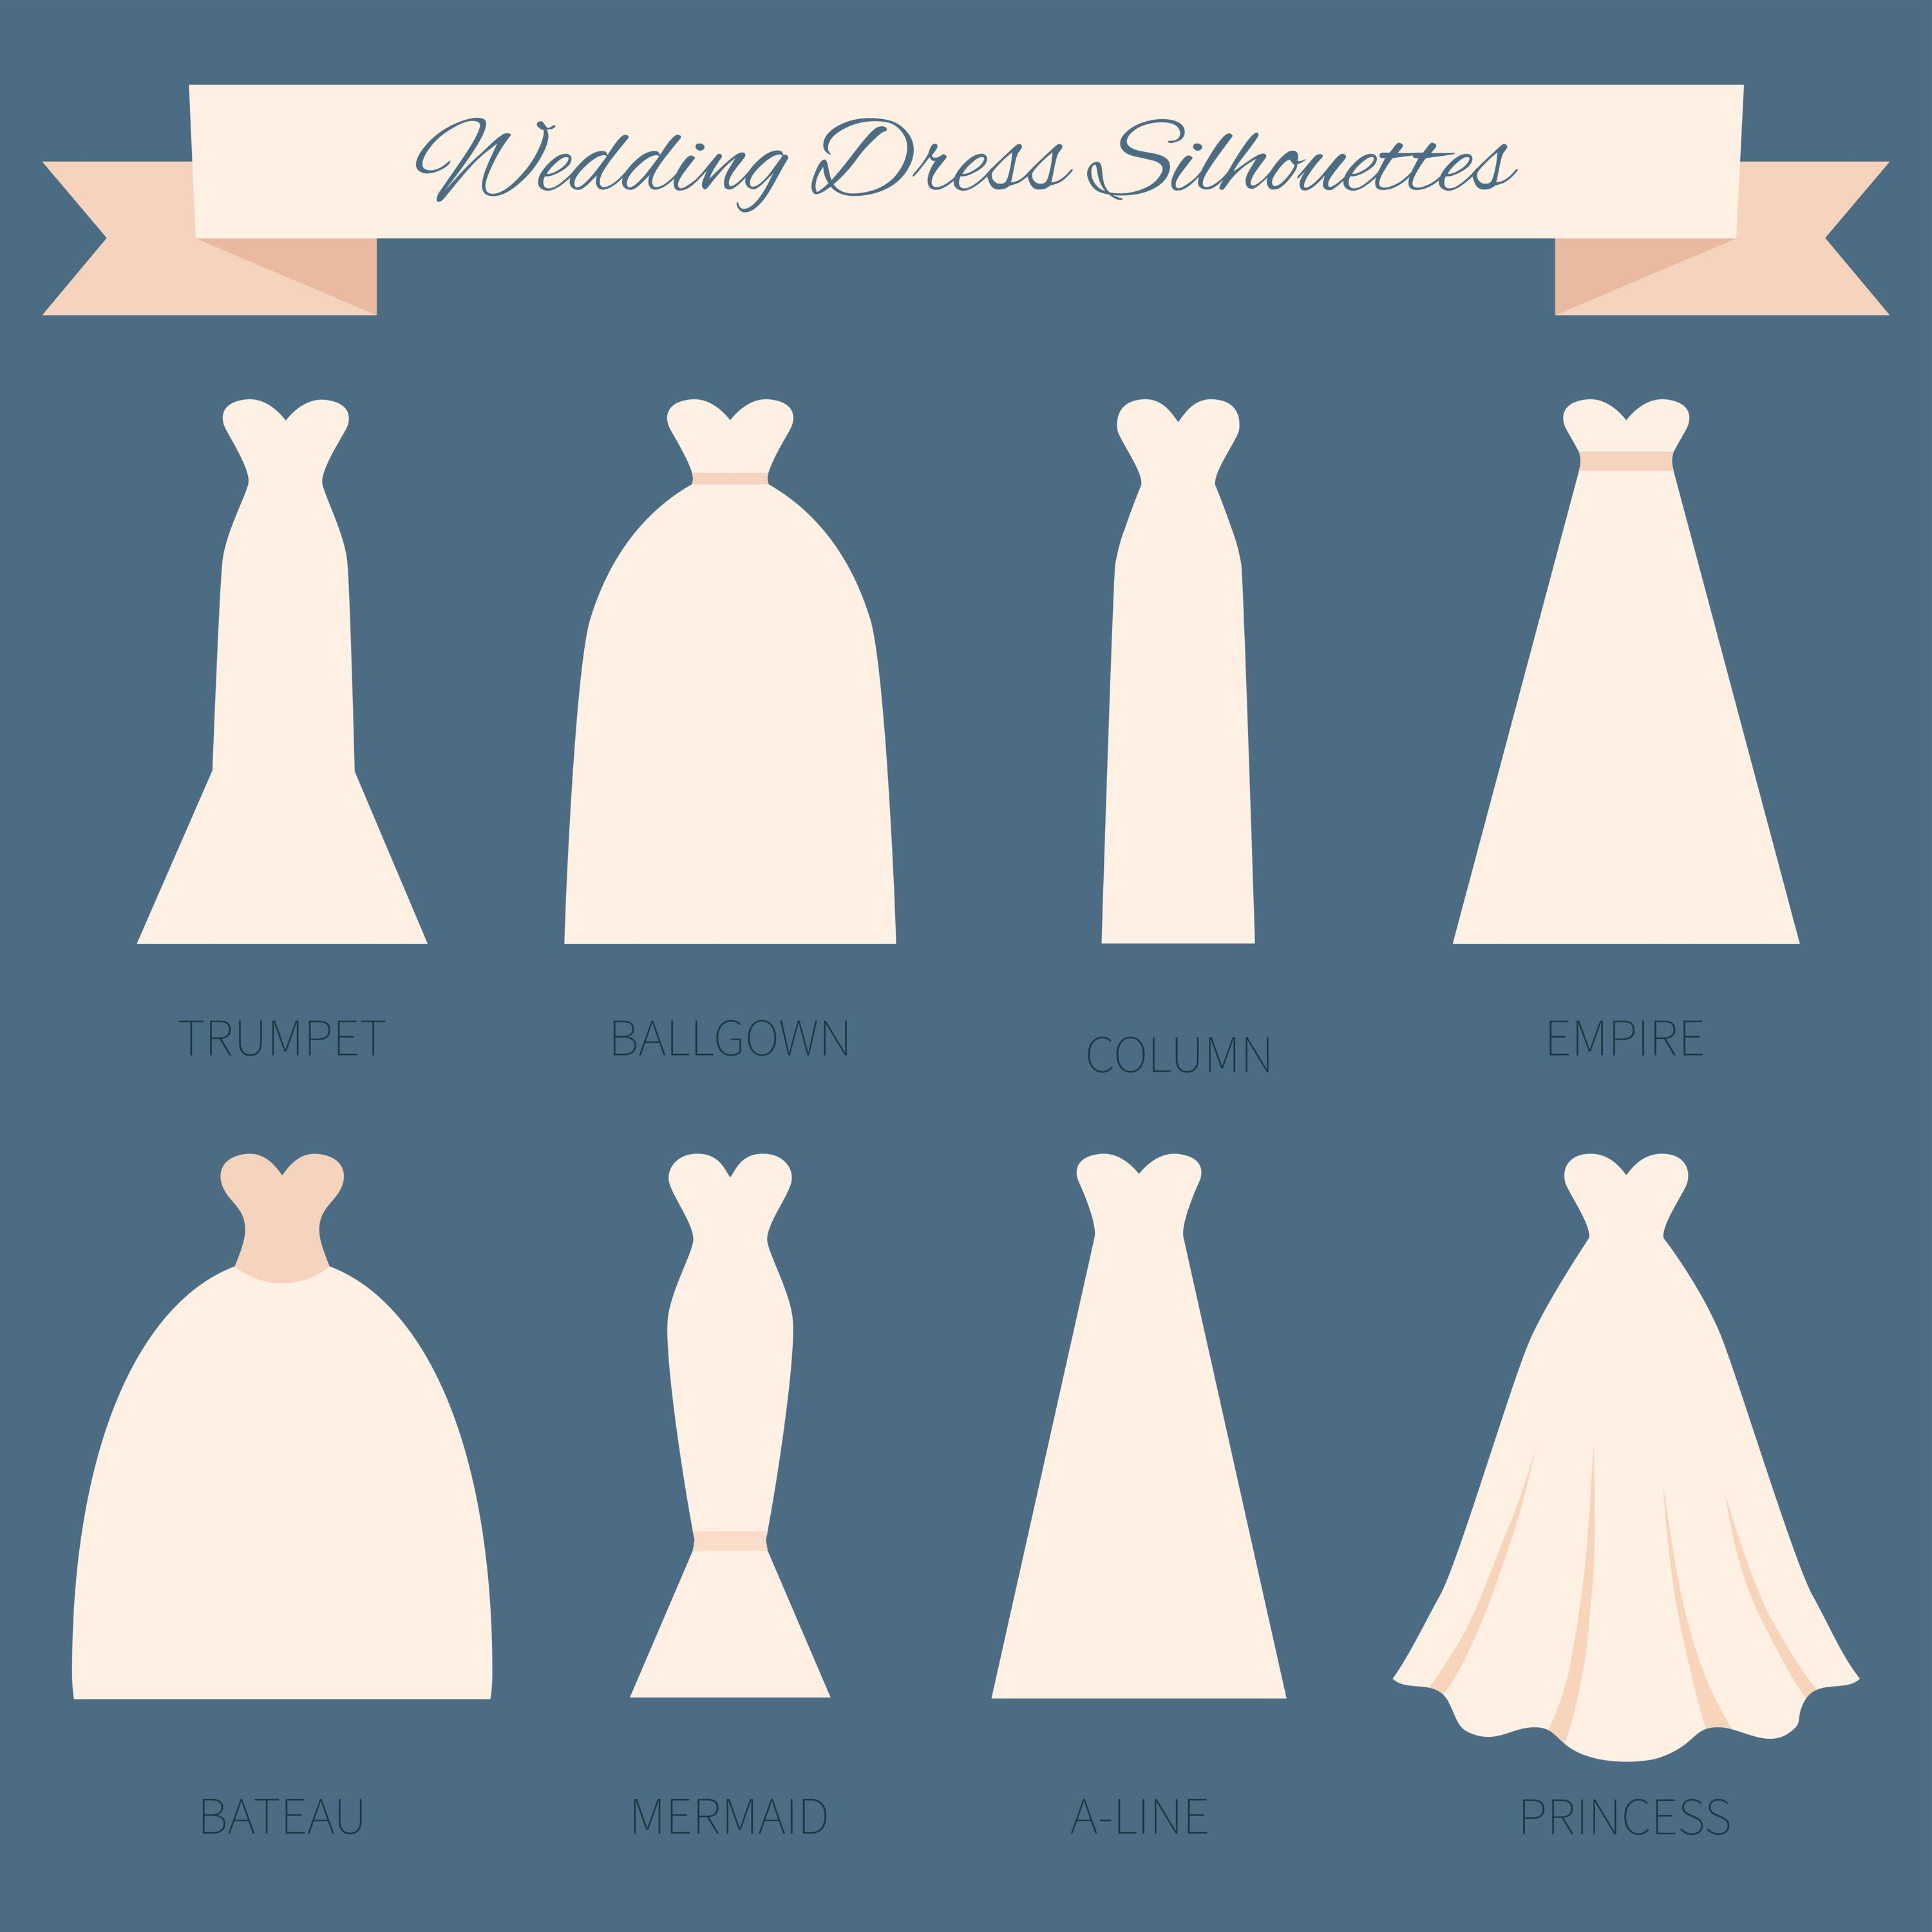 Best wedding dresses for body type  Need help with bridal gown styles shapes and terms Desperately